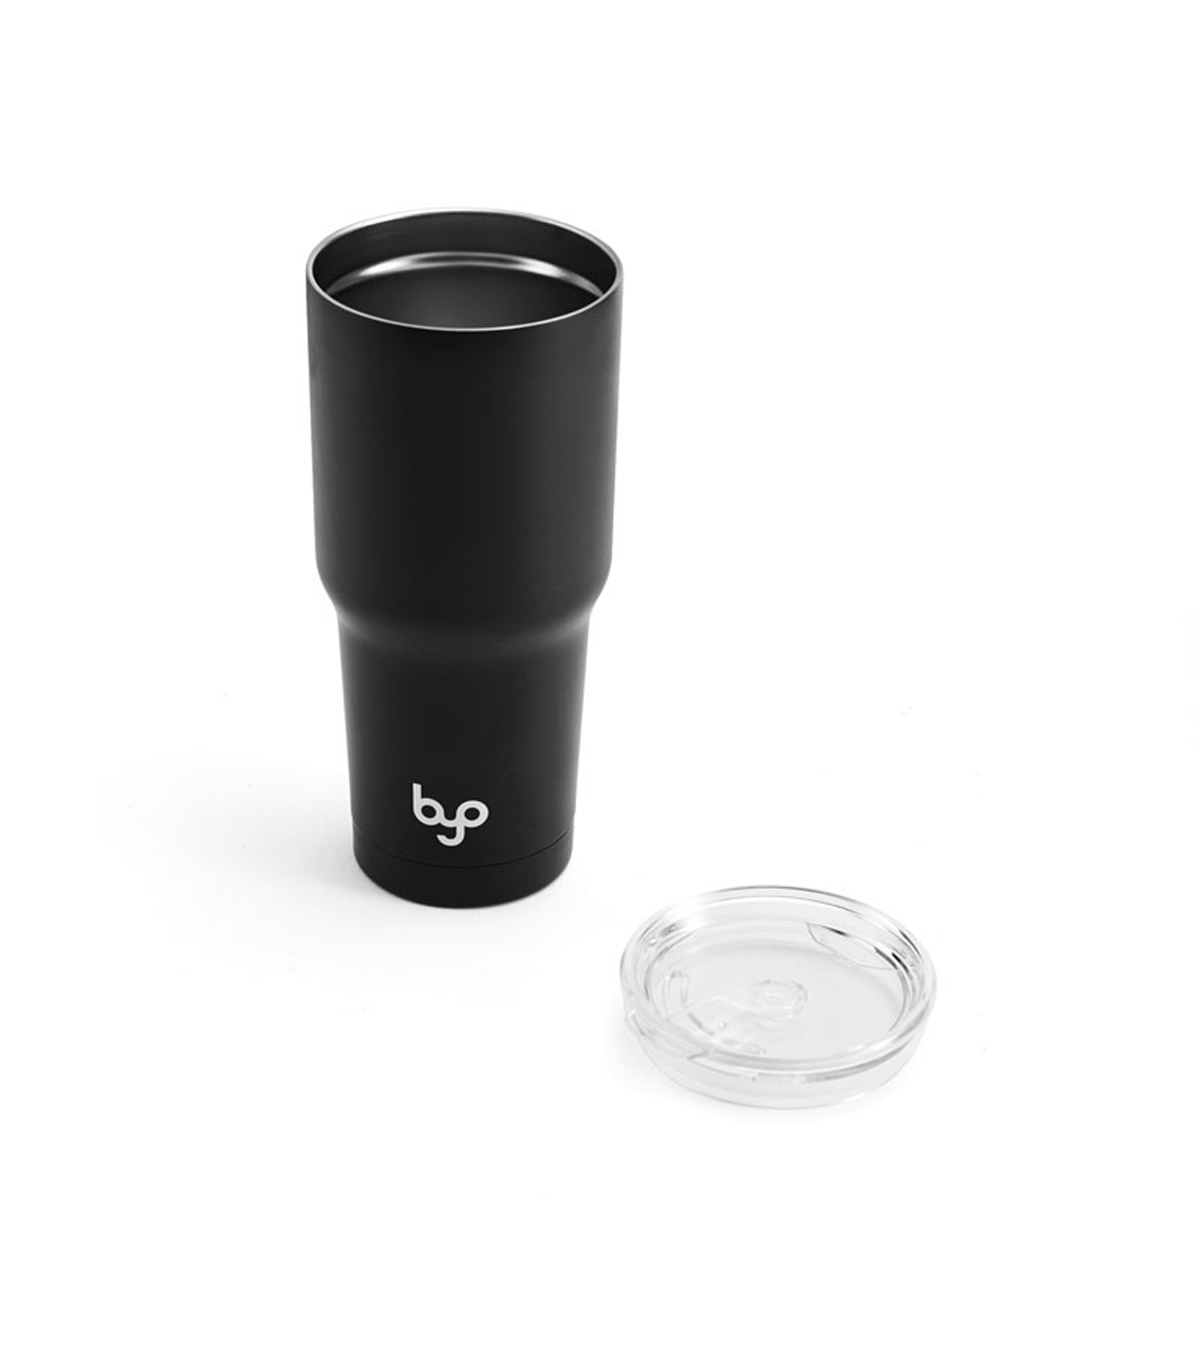 BYO 30 oz. Double-wall Stainless Steel Tumbler with Tritan Lid-Black